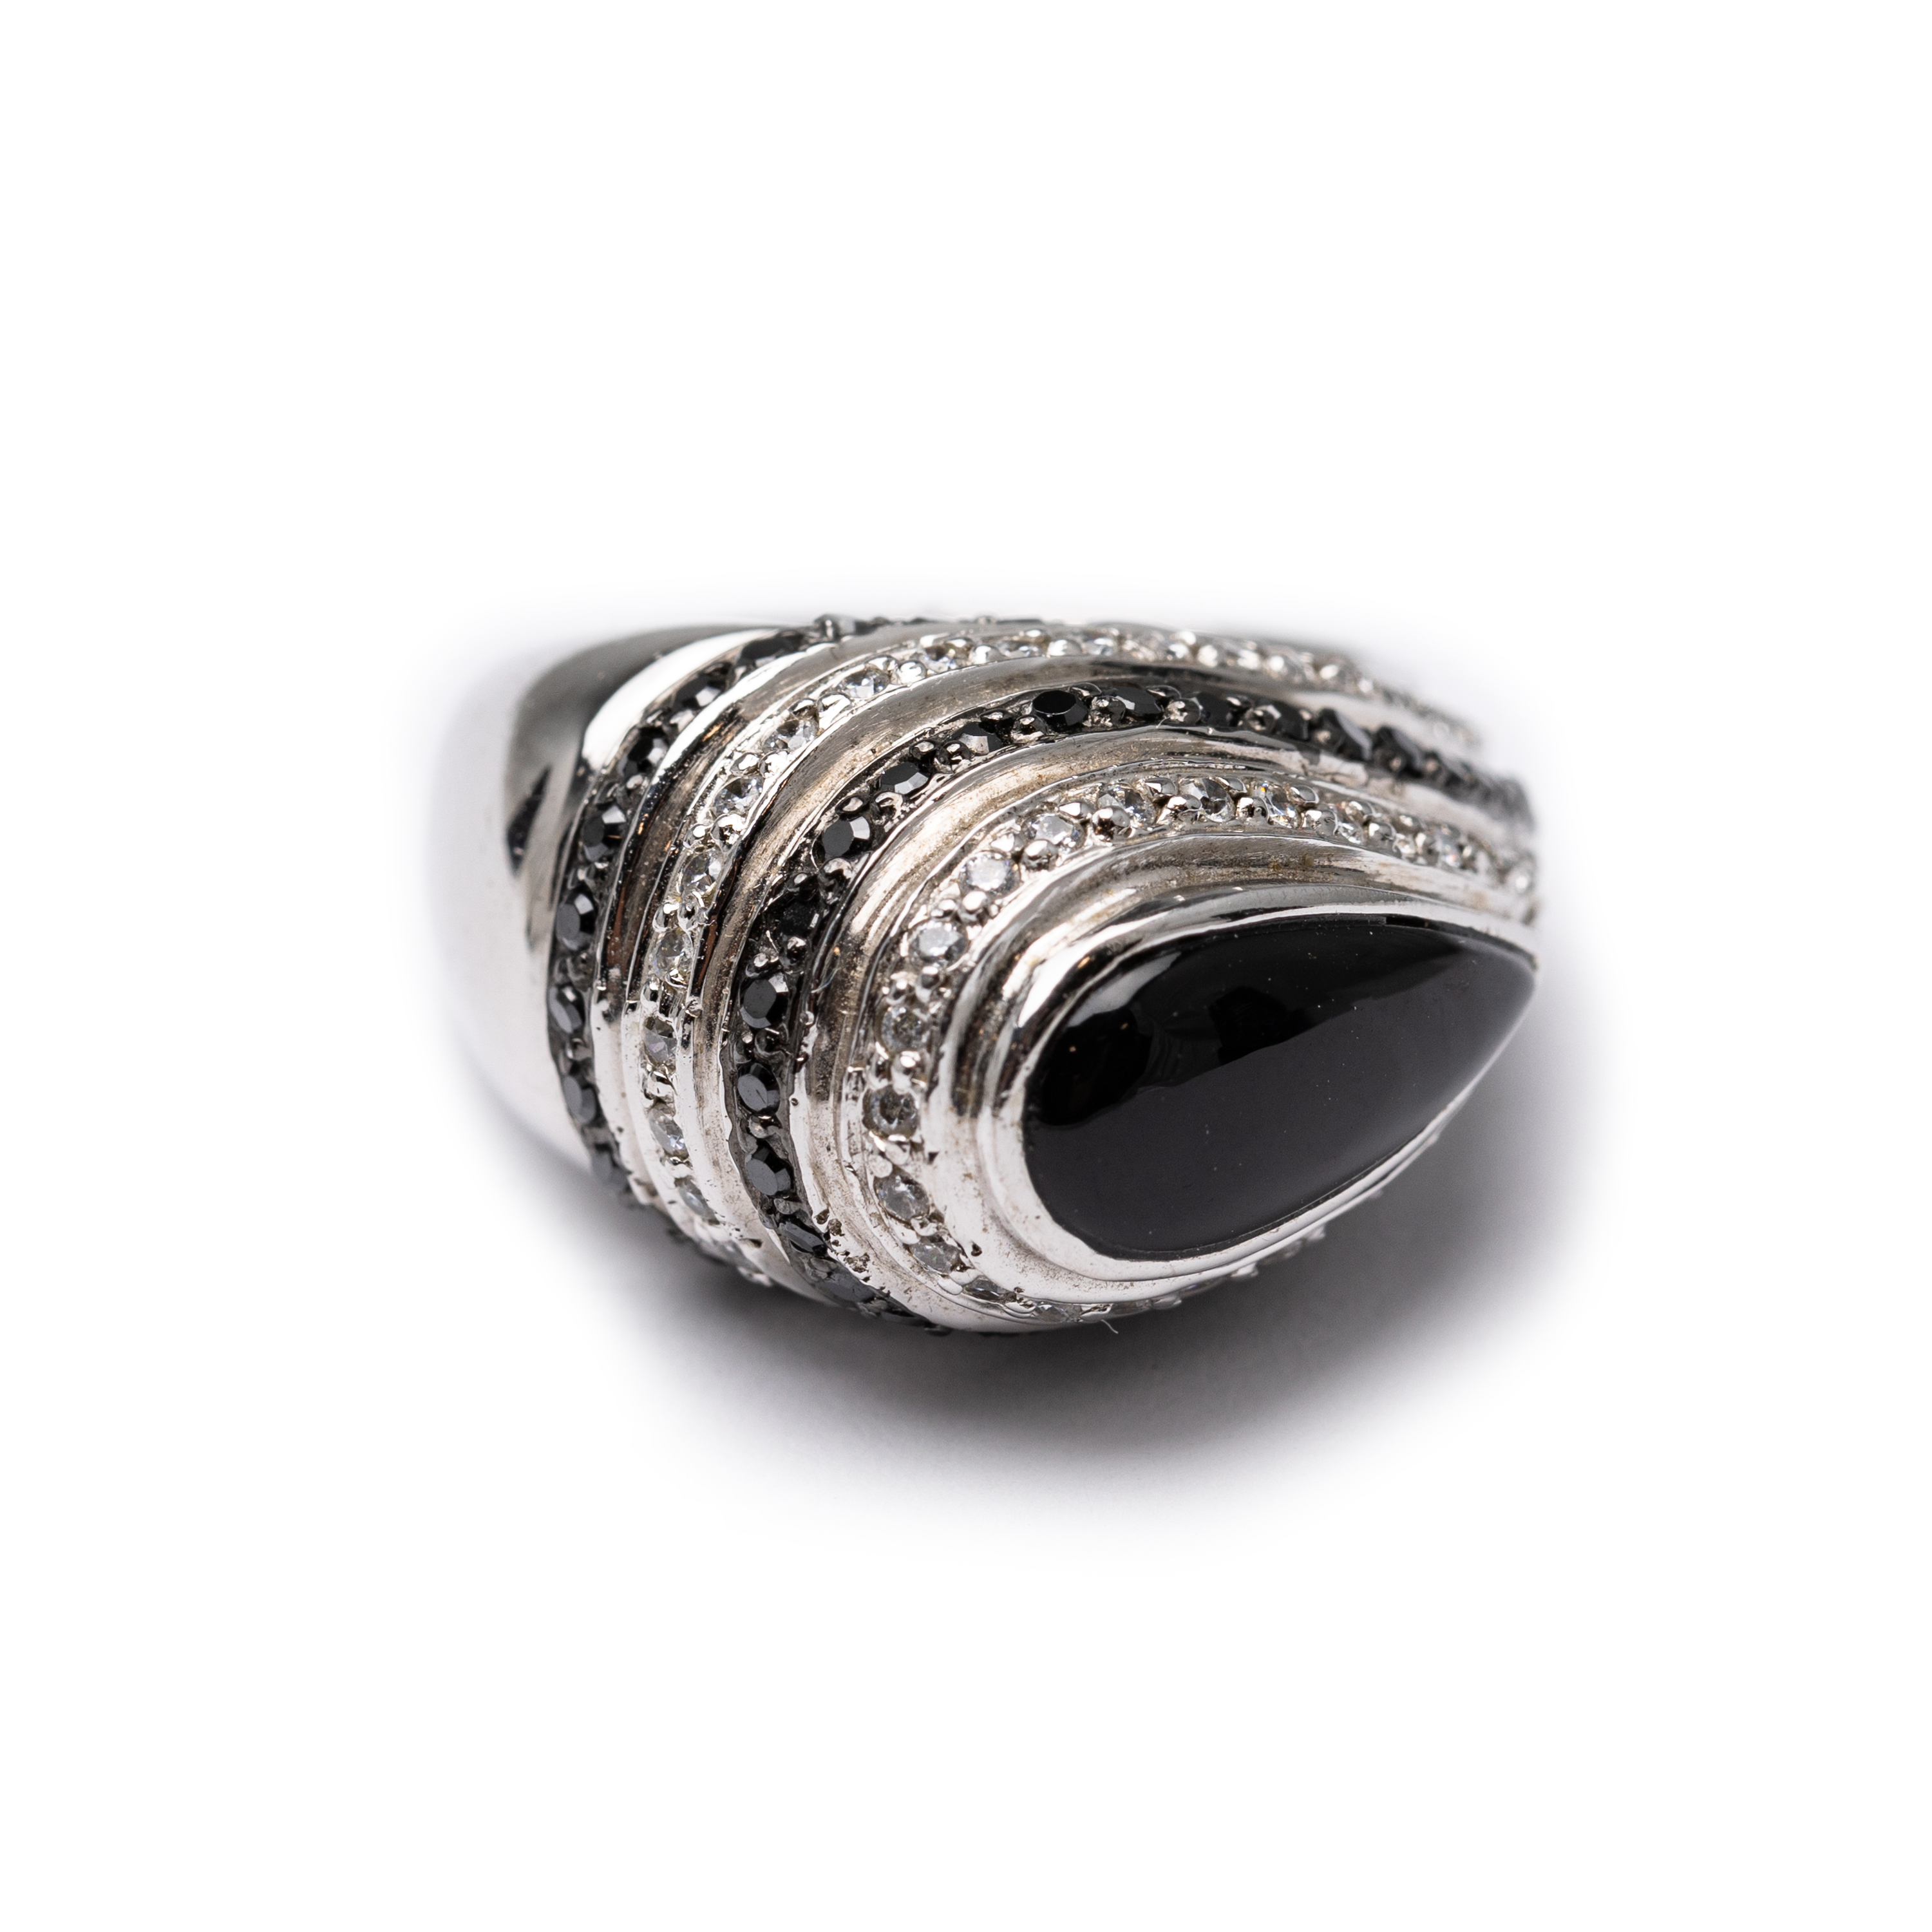 Silver 925 , Ring Set With Zircons And Blck Agate.